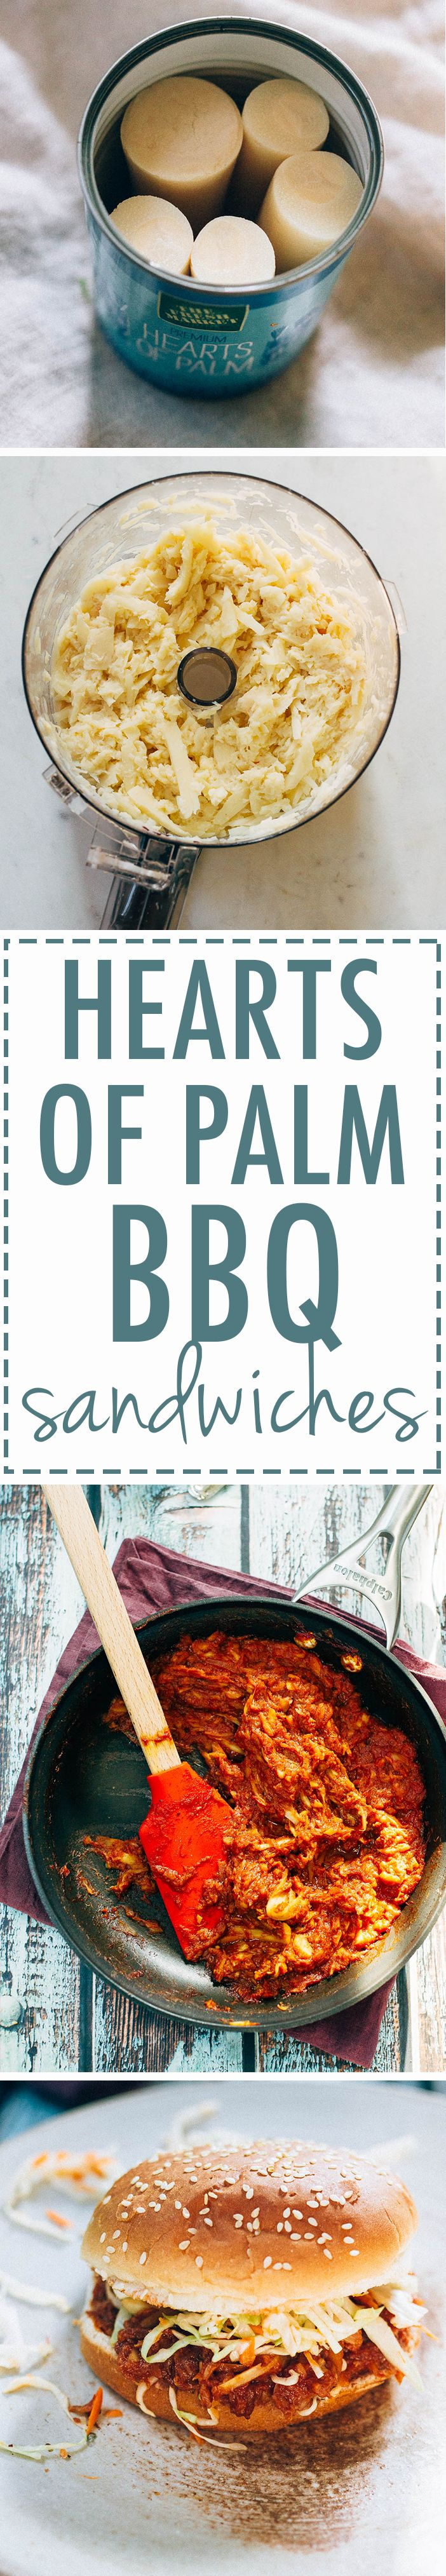 Vegan BBQ Sandwiches made with Hearts of Palm